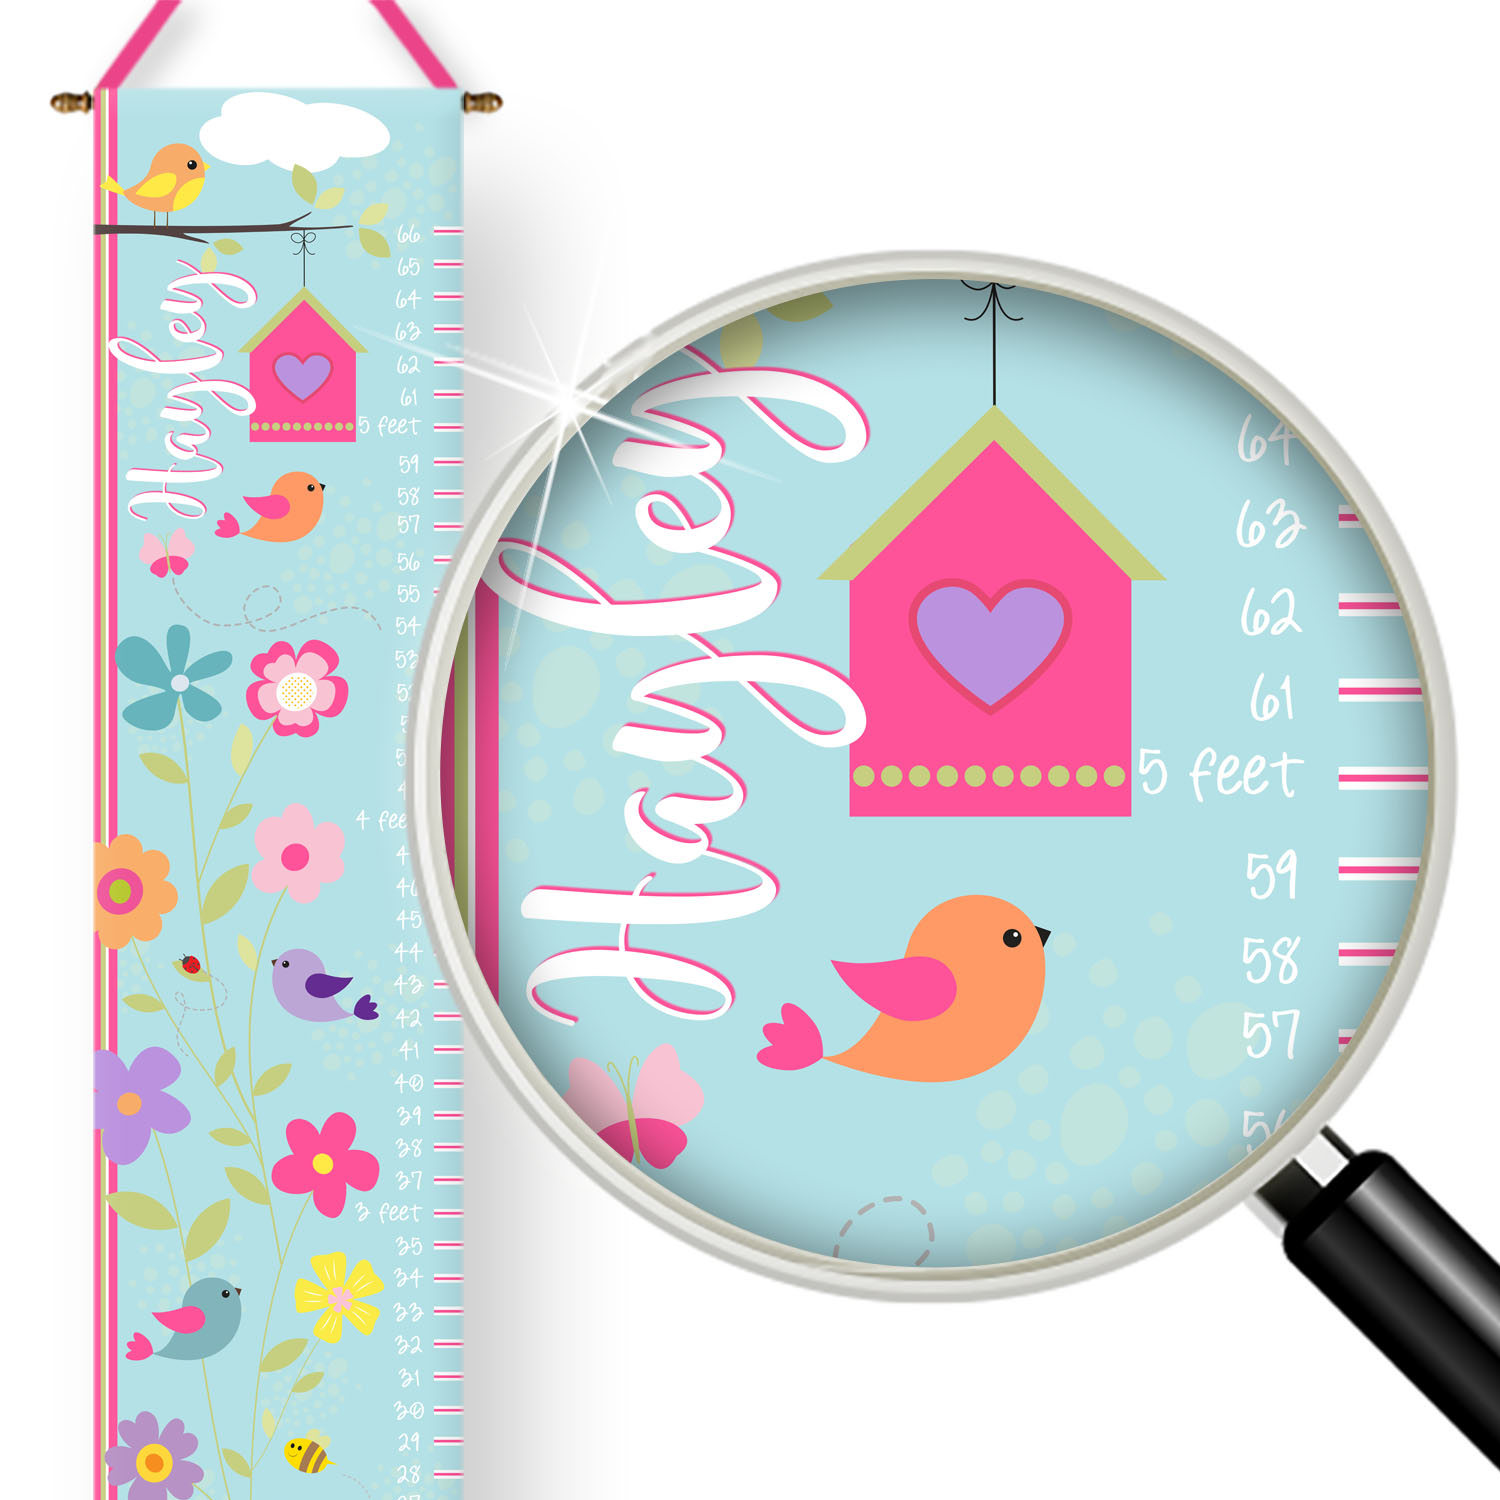 PKGC-00021-TweetDreams-GROWTH CHART Tweet Dreams Little Birdies Girls Personalized Kids Growth Chart by Pickleberry Kids